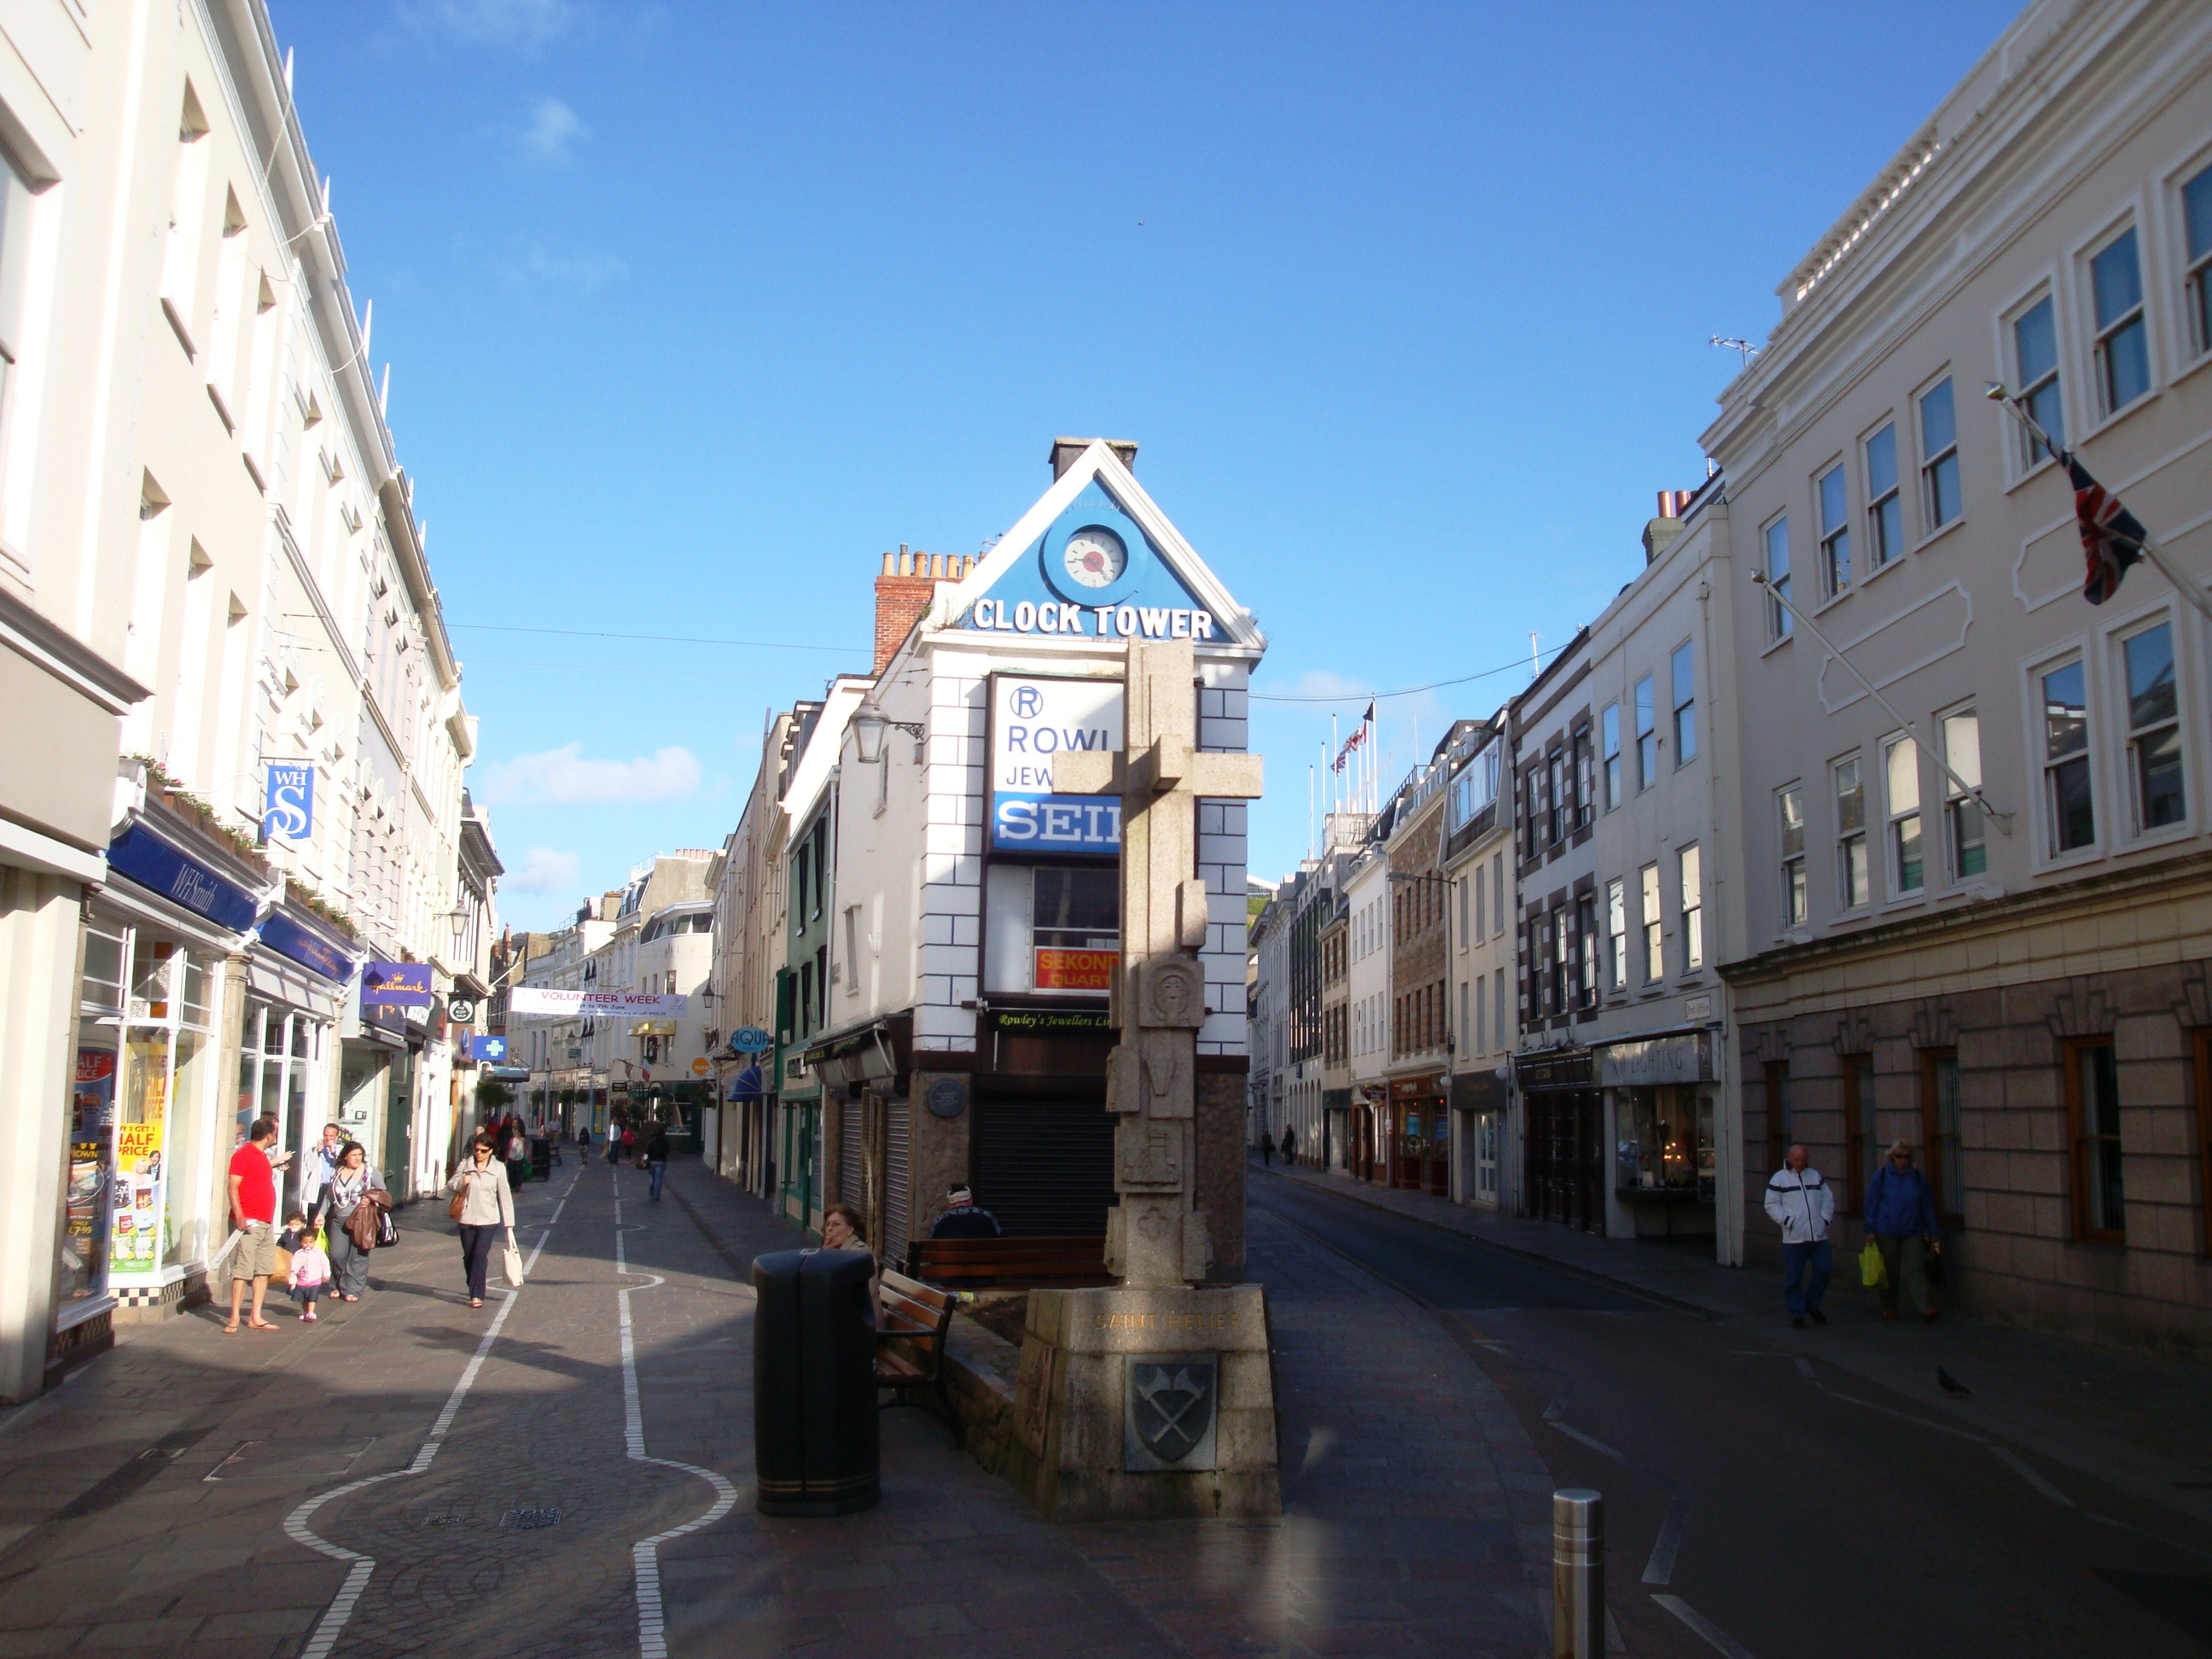 FileStreets St Helier Jersey Panoramiojpg